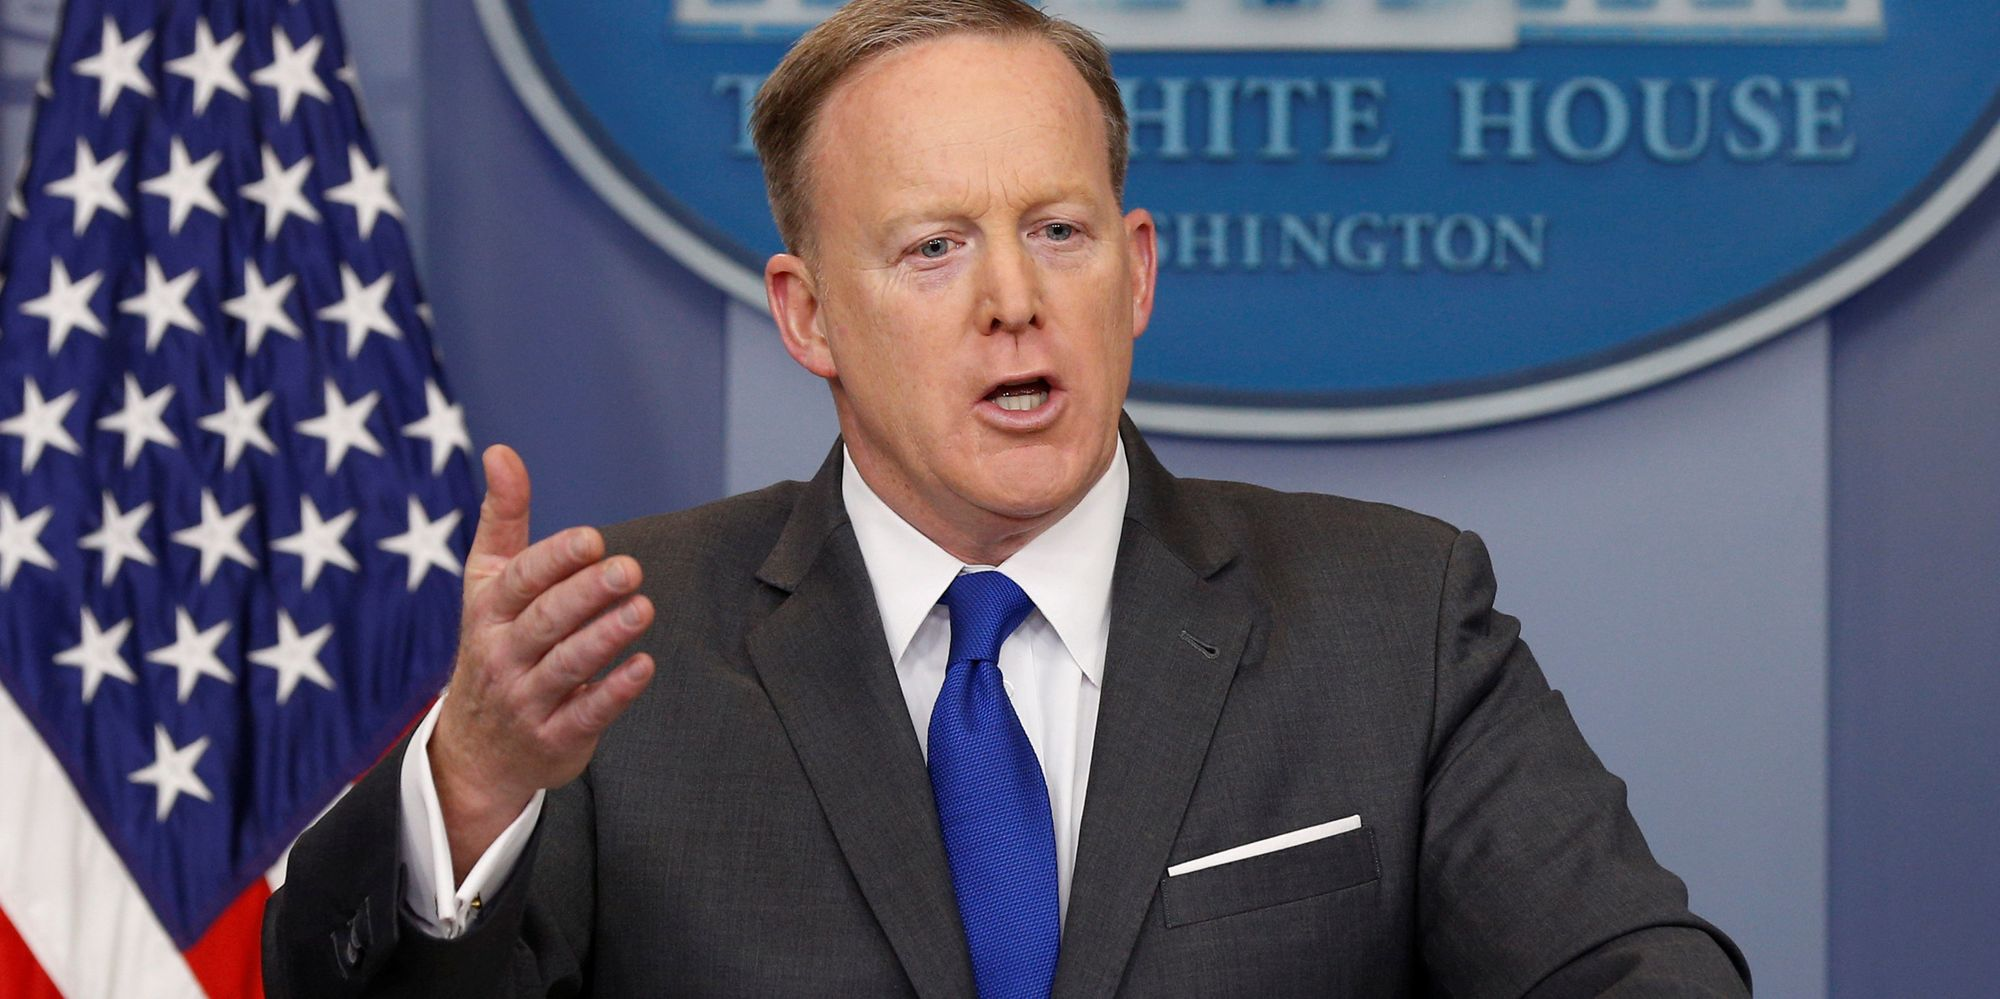 Sean Spicer Claims Former Trump Campaign Manager Only Played A 'Limited Role'